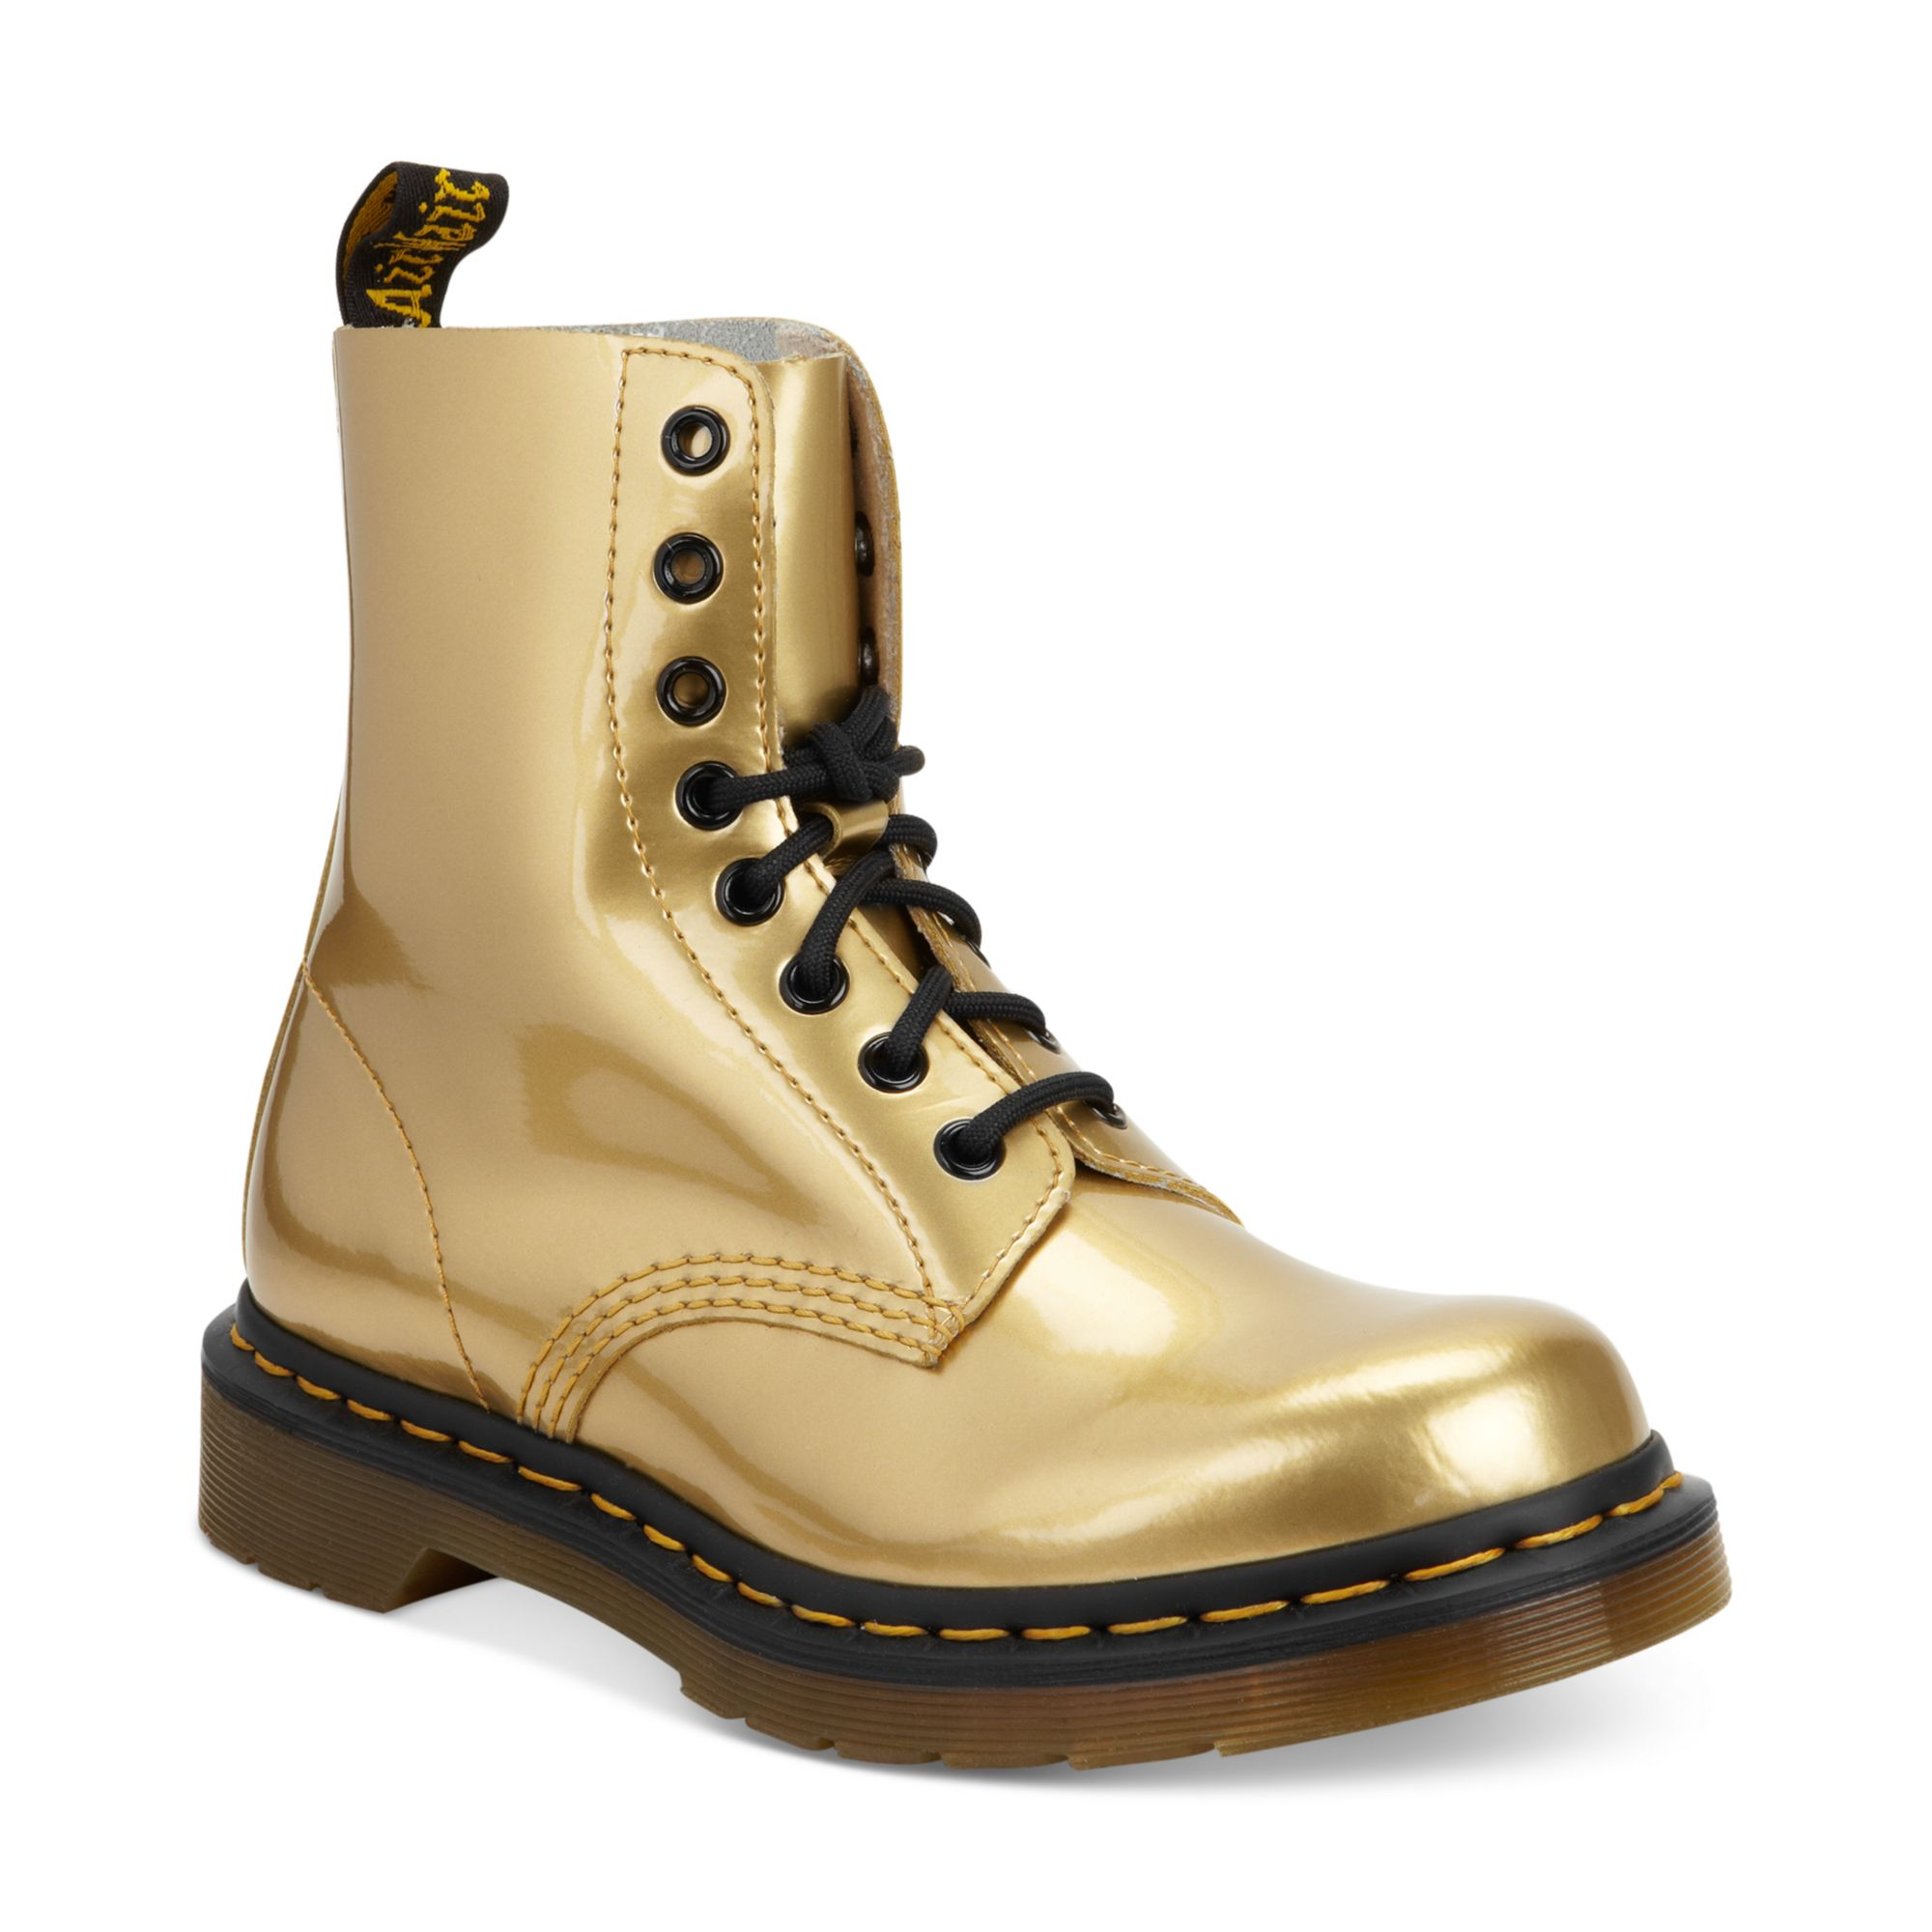 Dr Martens Ankle Boots In Gold Gold Metallic Lyst